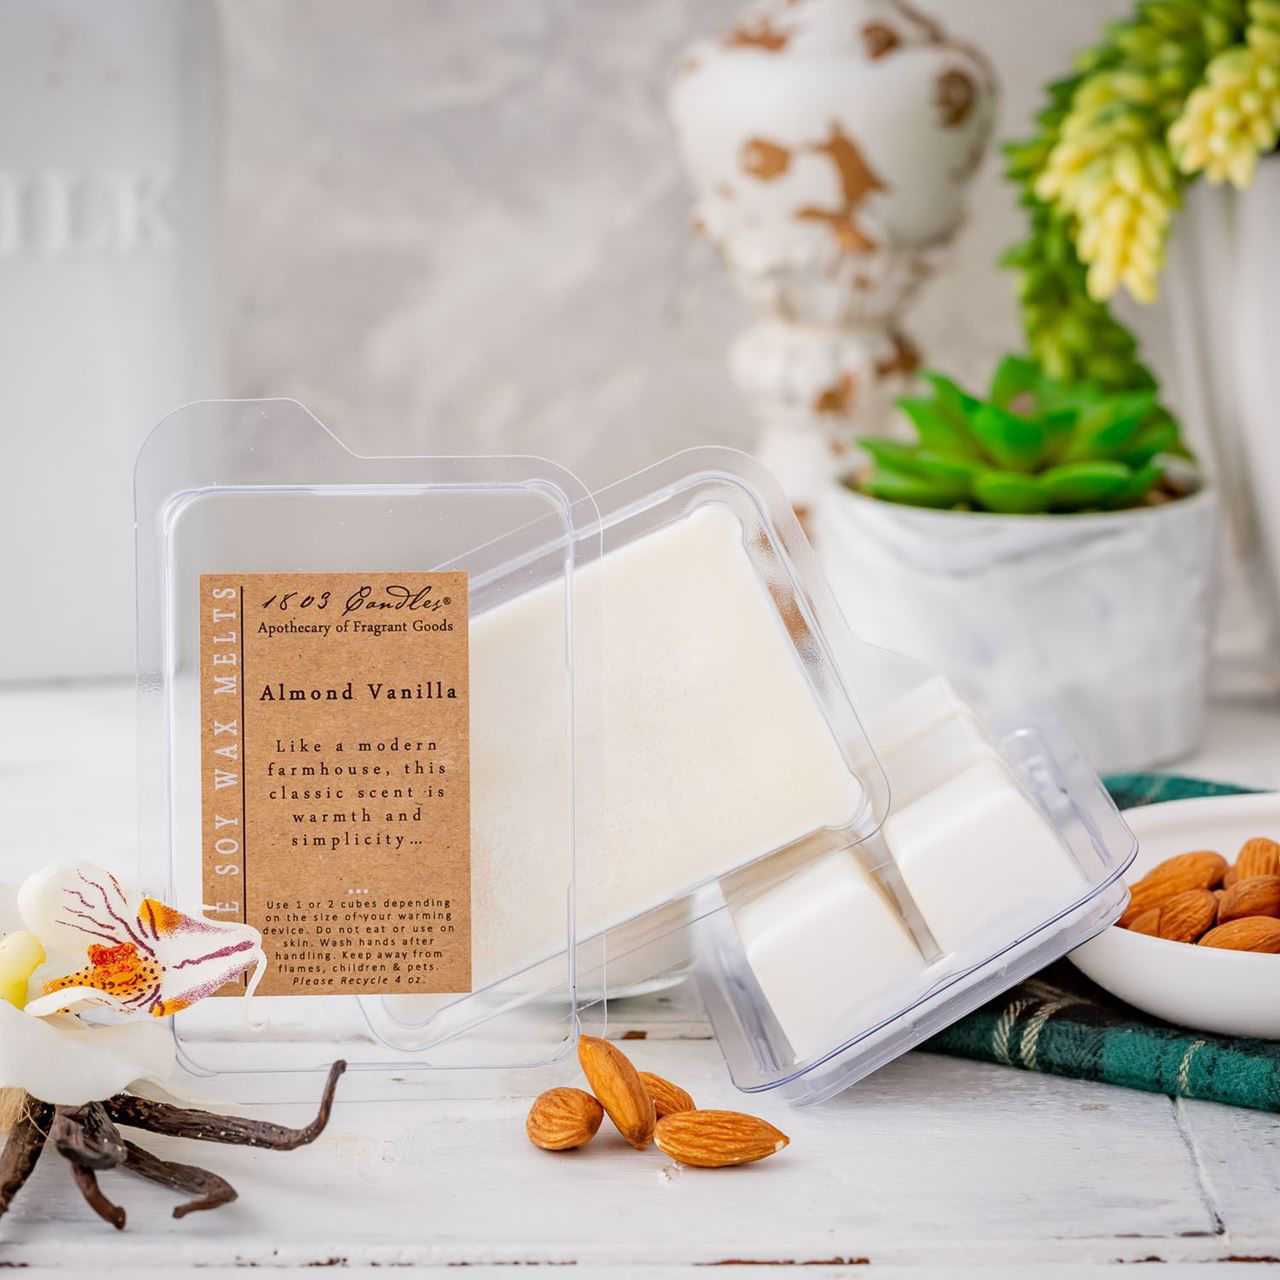 Almond Vanilla Melters by 1803 Candles